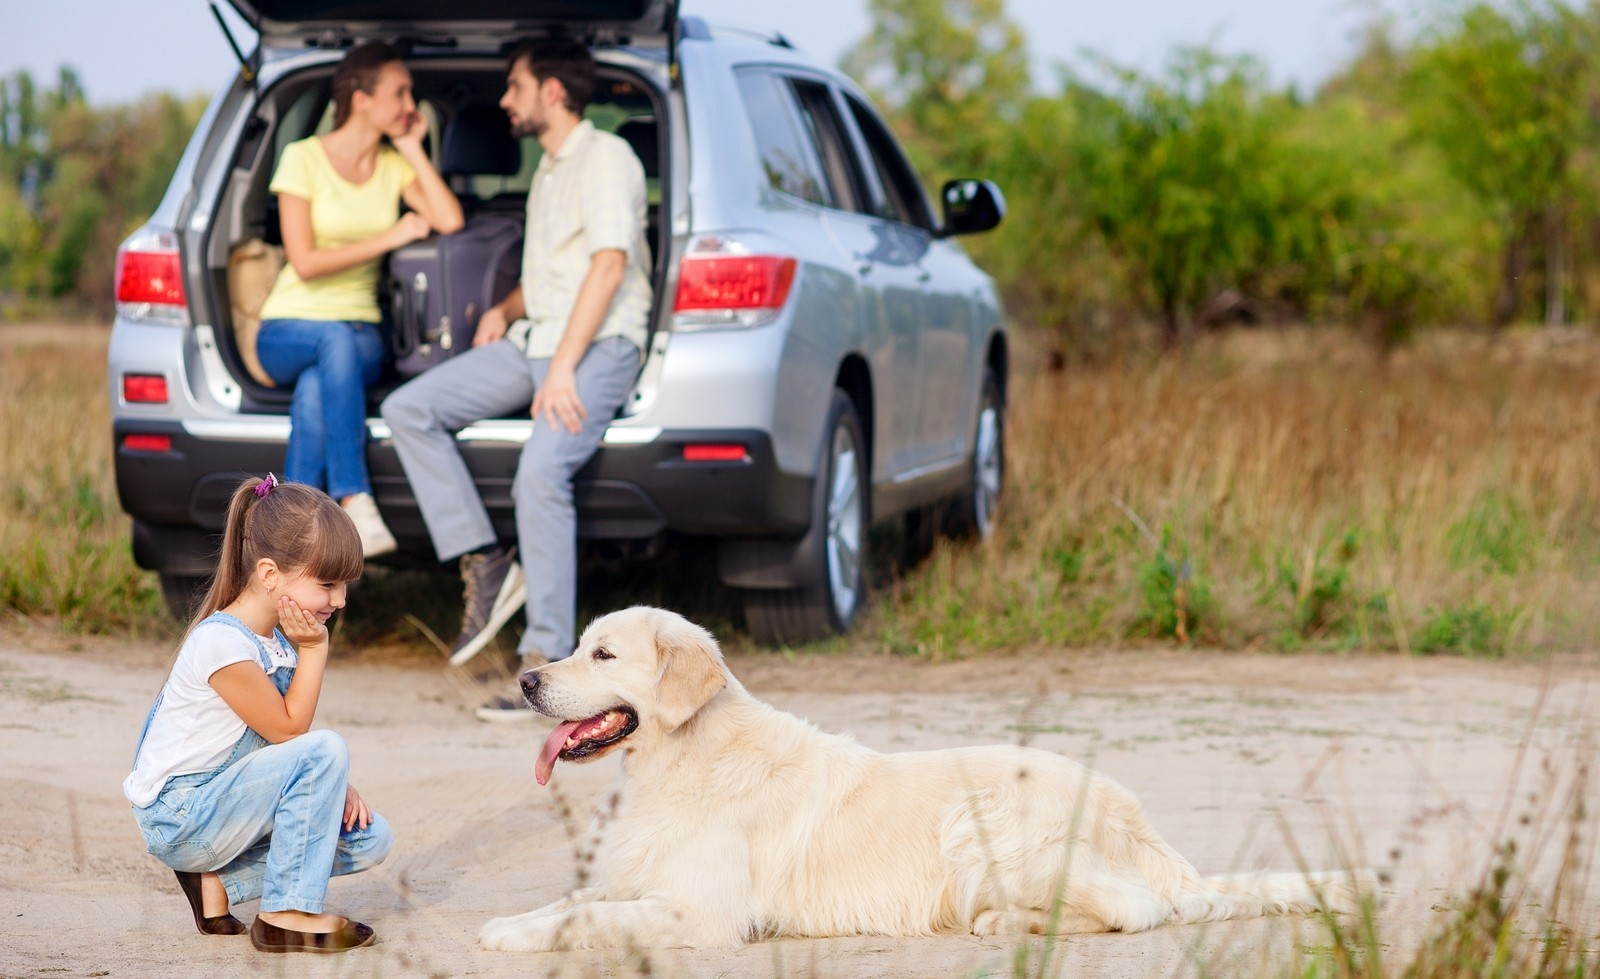 Cute family and pet are resting near vehicle outdoors